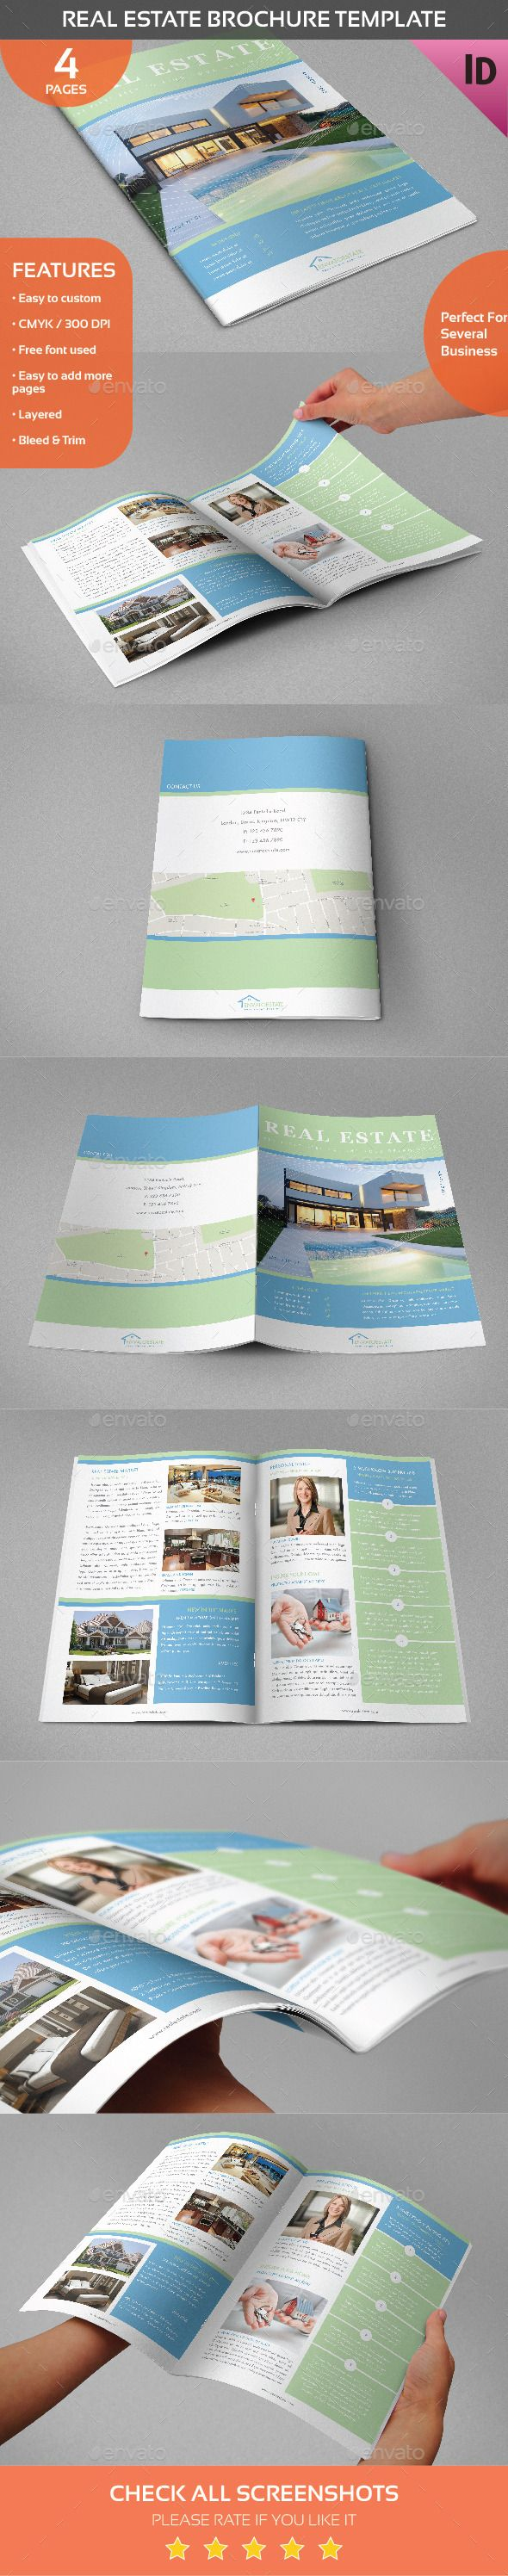 Real Estate Template%0A Real Estate Brochure Template